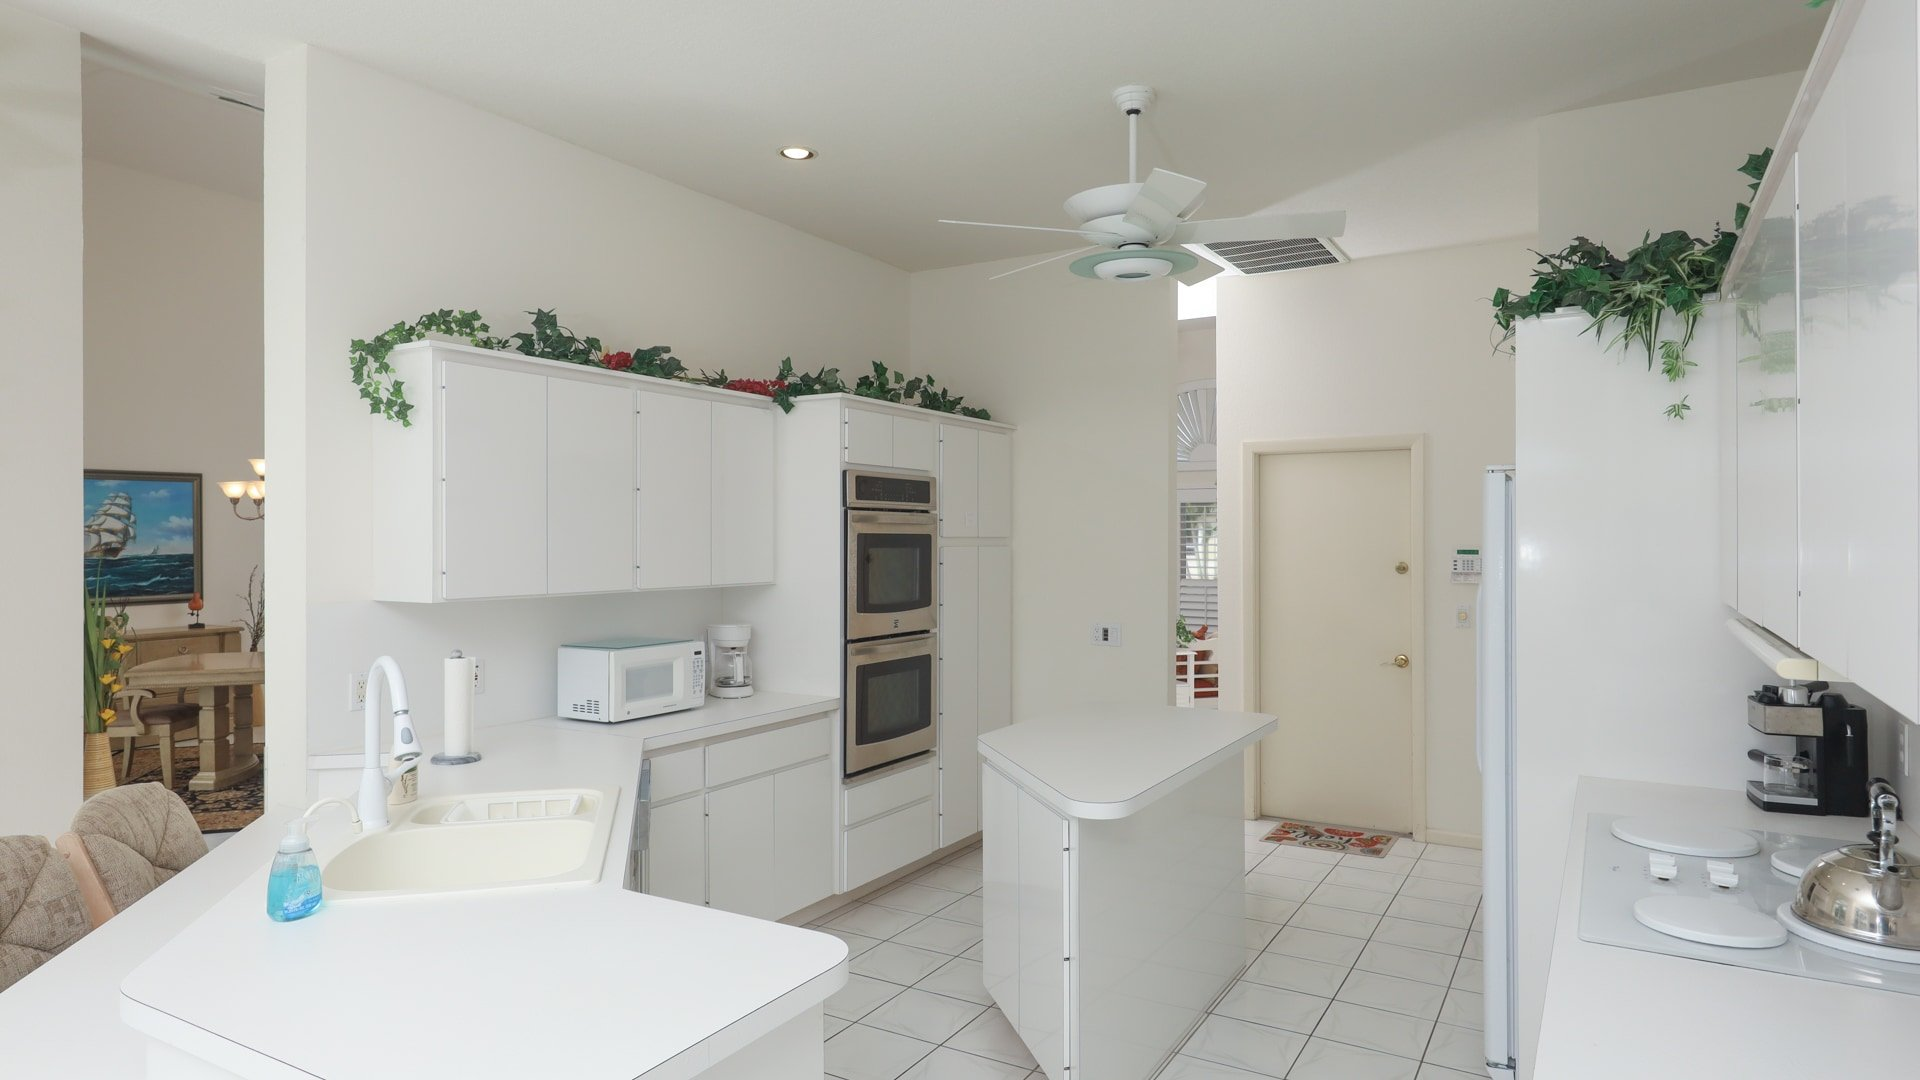 3836 Paola Dr-212767